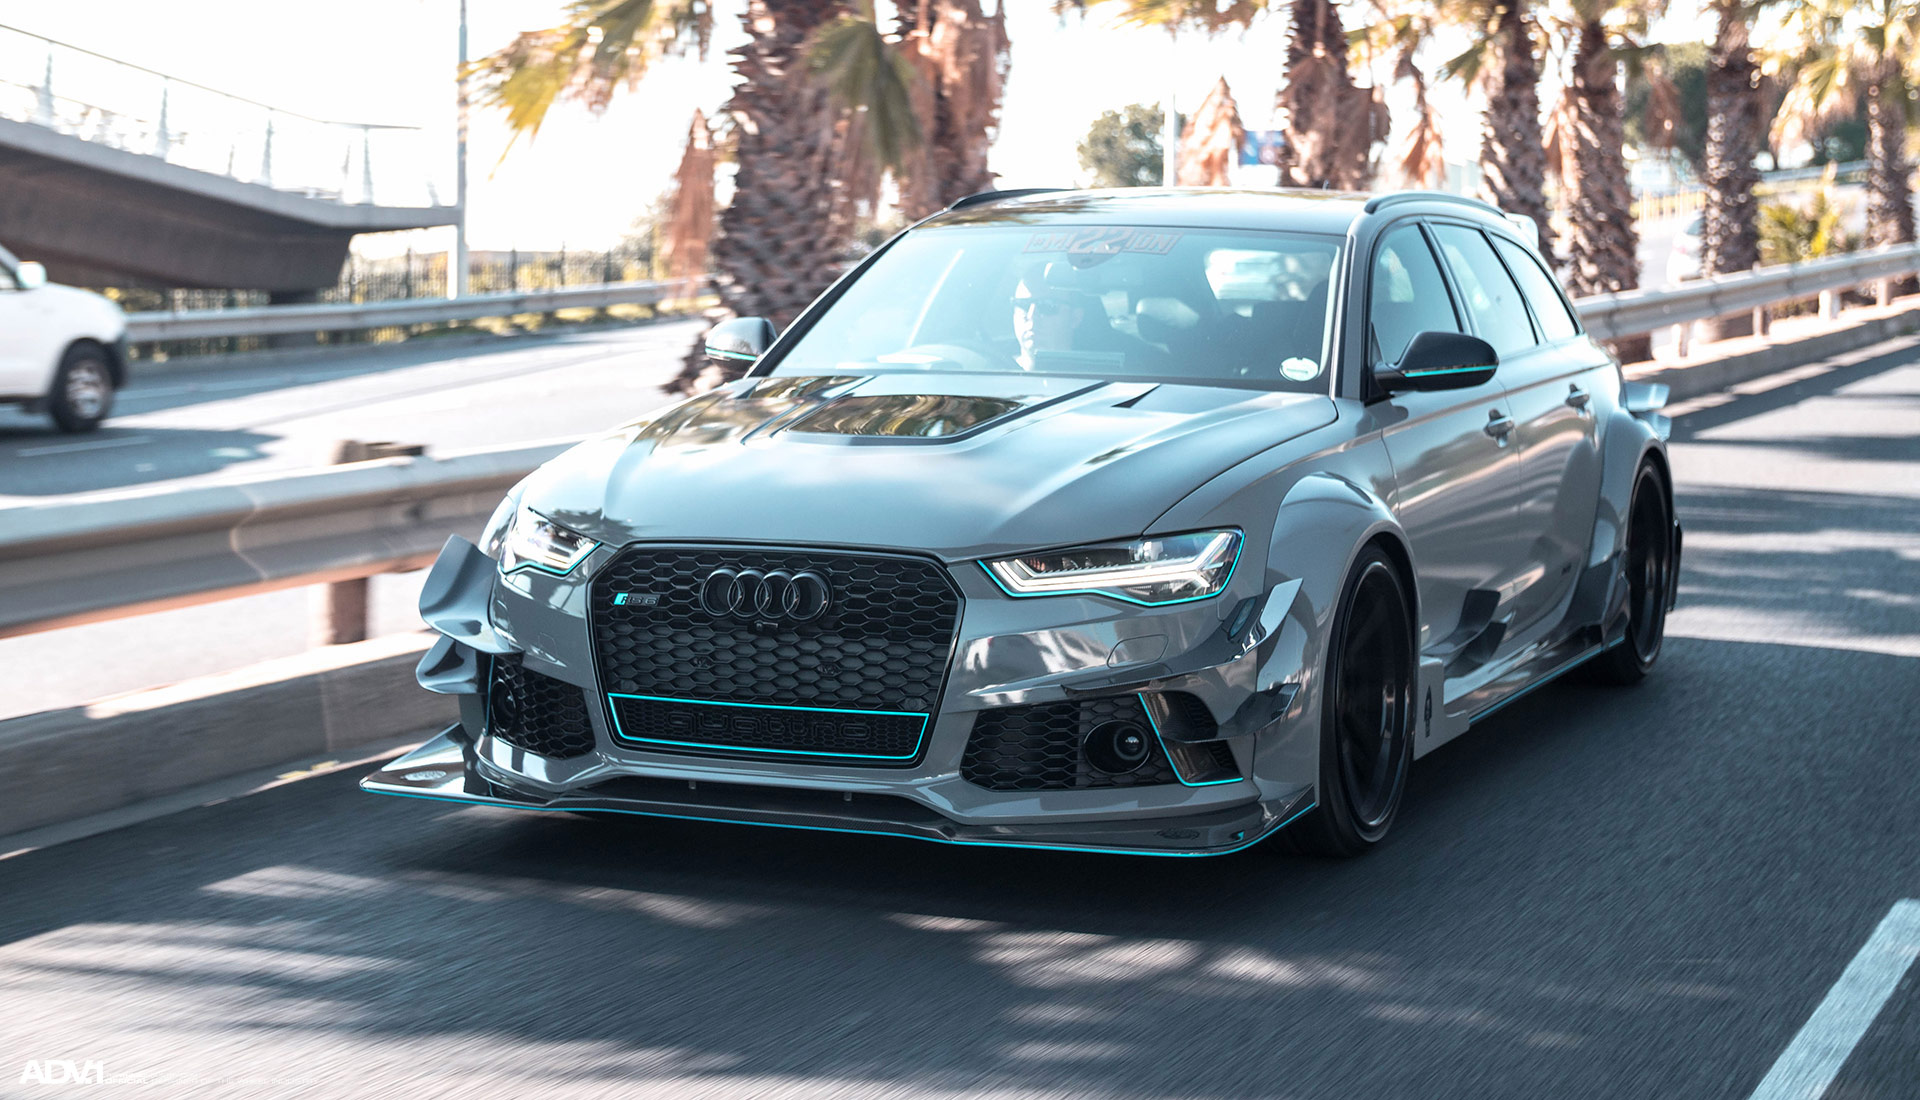 Audi RS6 Avant By Race (63)